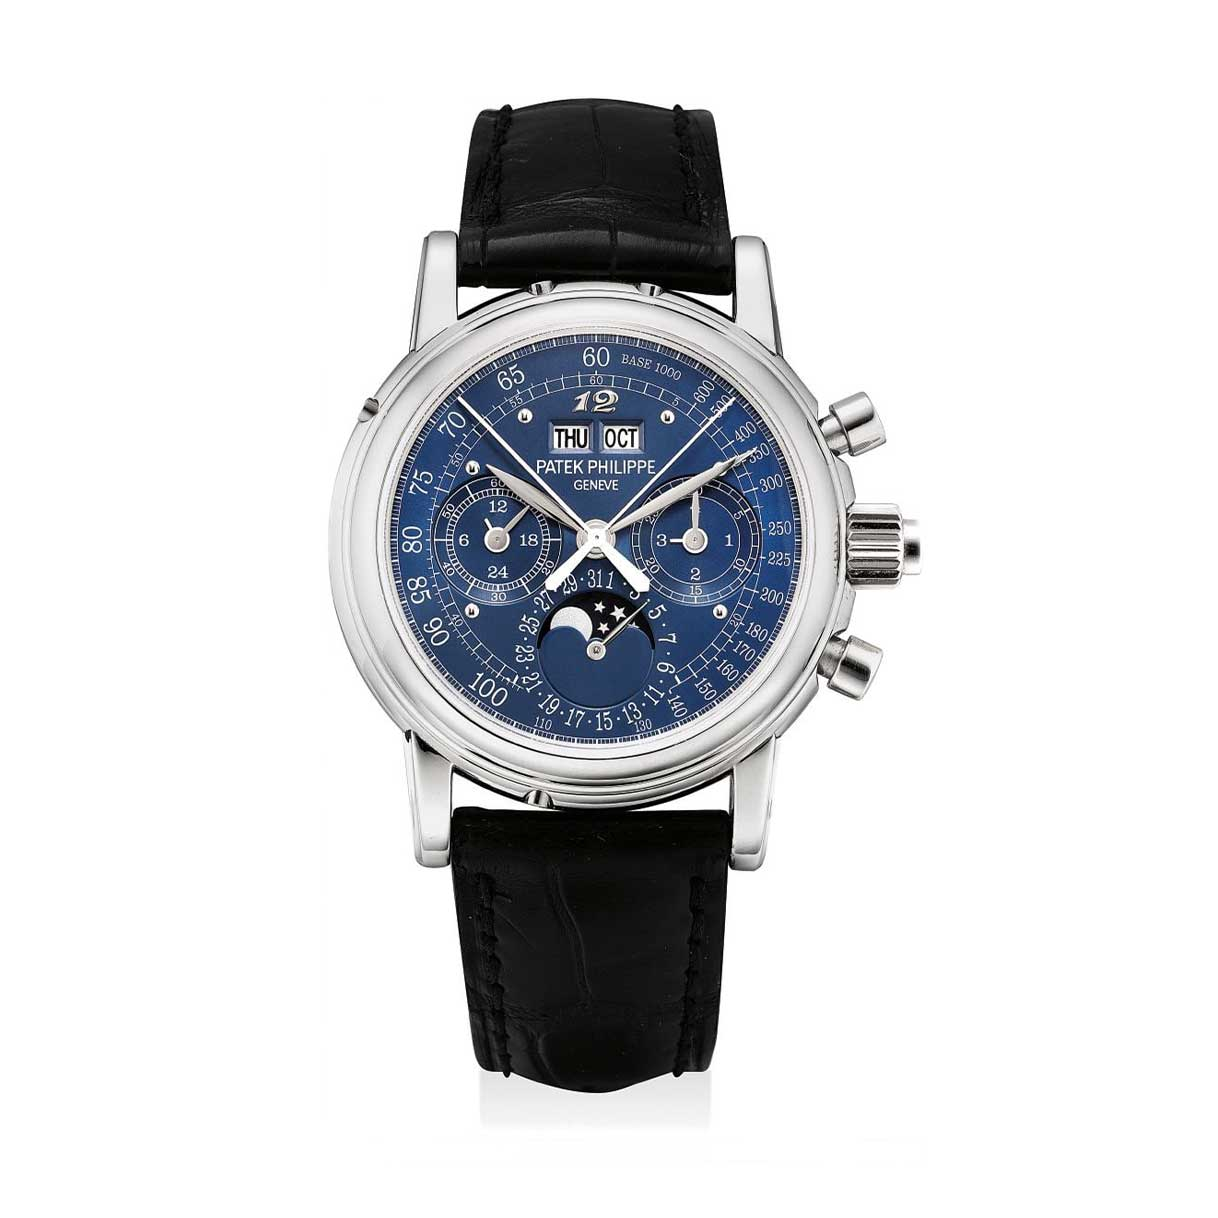 Formerly in the collection of Eric Clapton, CBE, a platinum Patek Philippe ref. 5004 perpetual calendar split seconds chronograph wristwatch with a special blue tachymetre dial and applied Breguet numeral at 12 o'clock (Image: phillips.com)